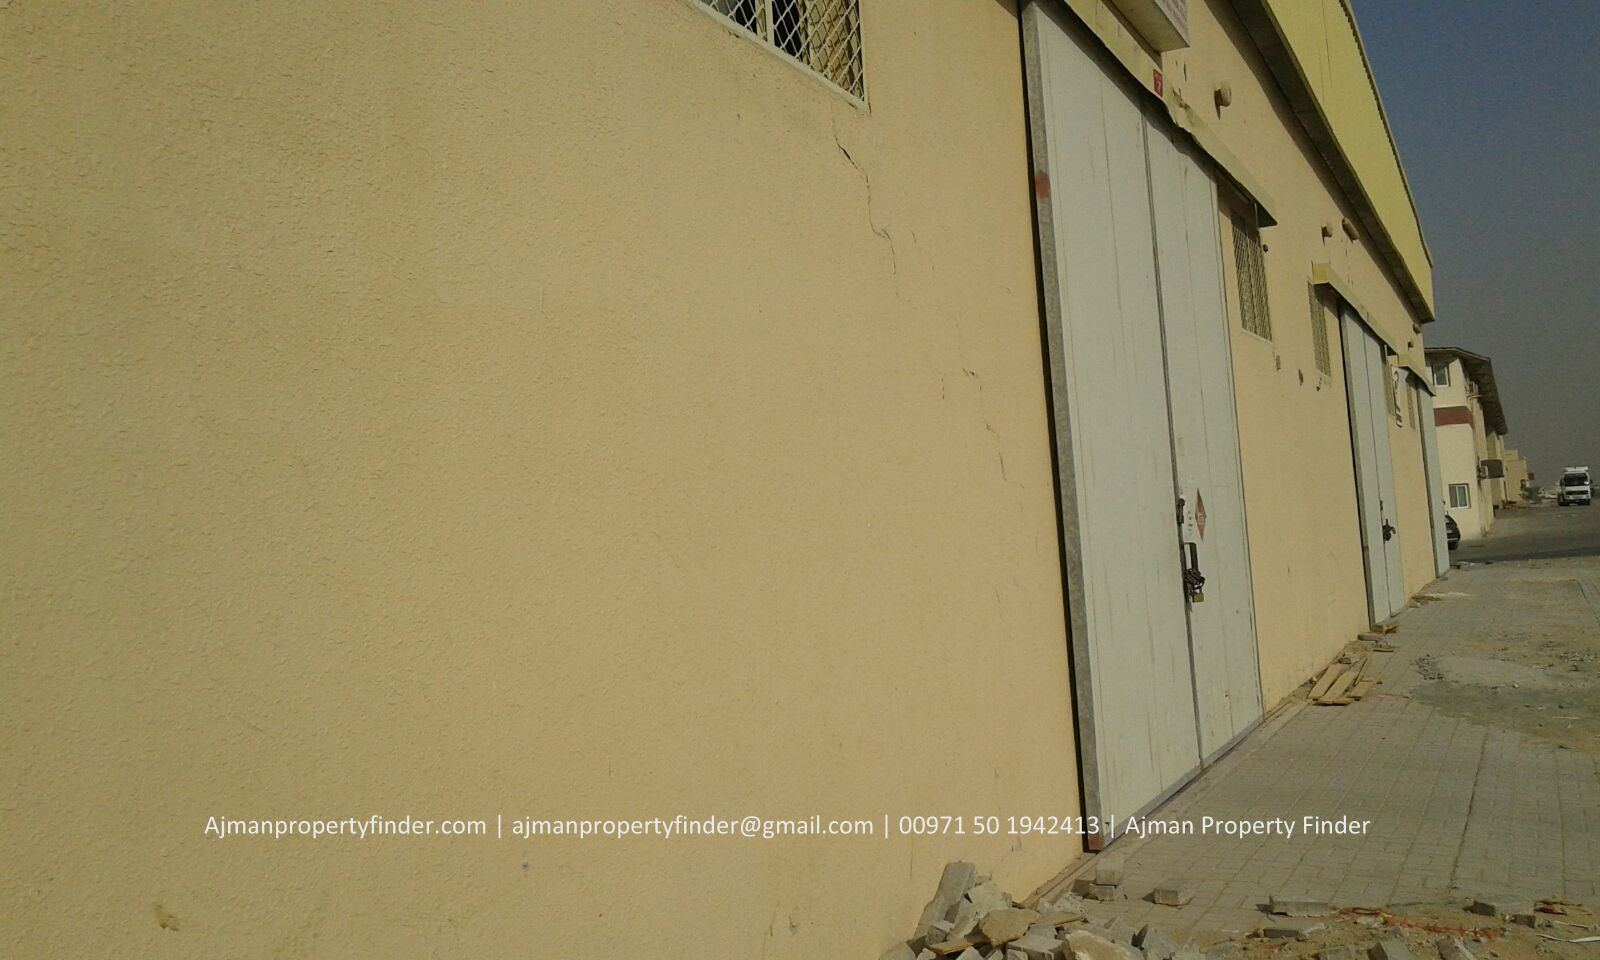 Warehouse for Rent in Ajman | 6700-sqft with Electricity warehouse in Ajman Industrial Area